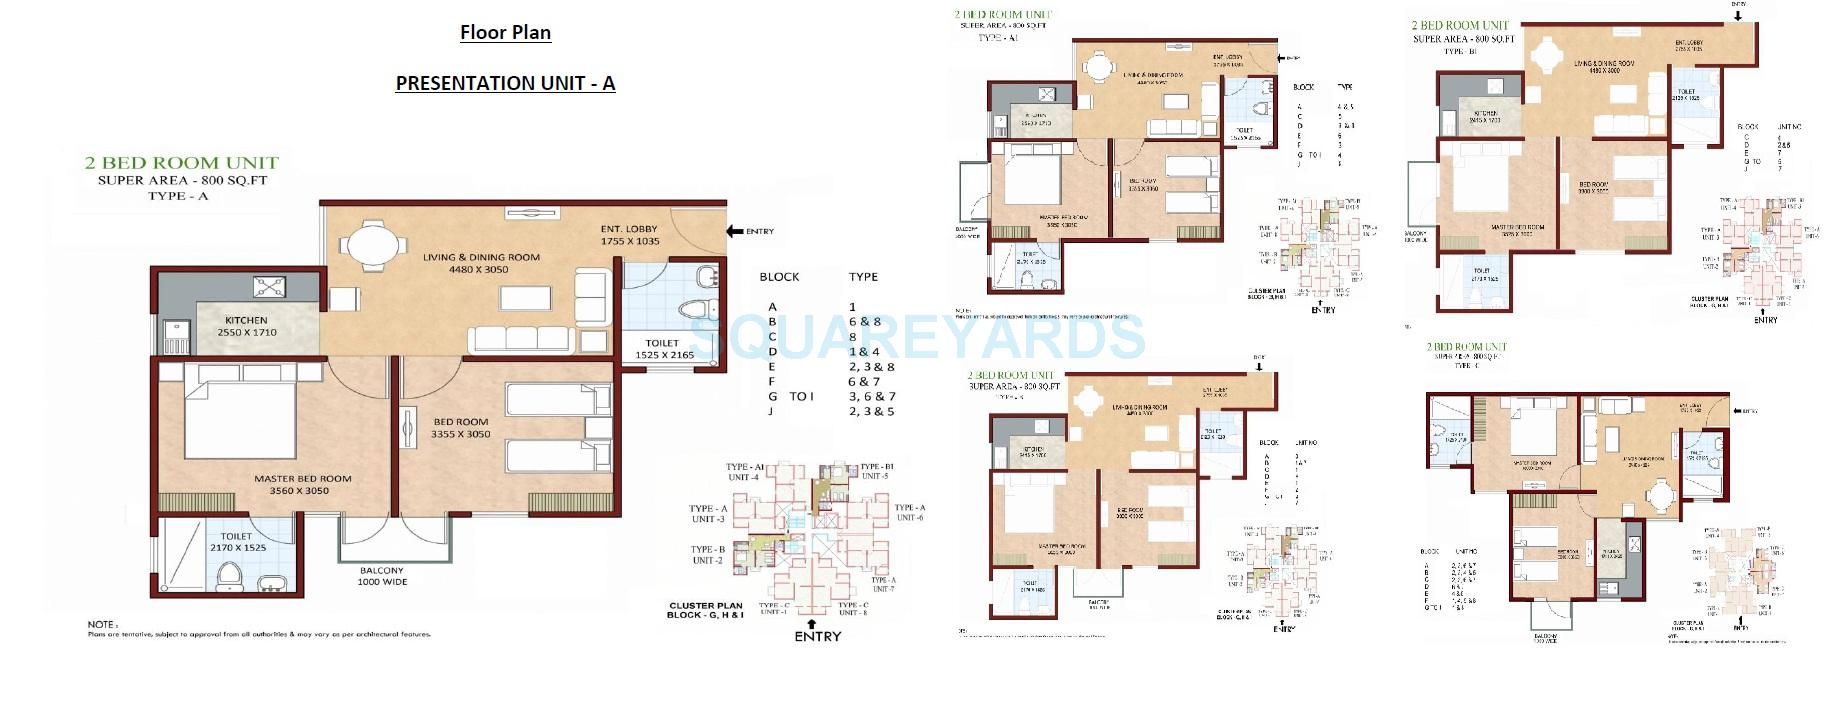 800 Sq Foot Apartment Floor Plan  Latest BestApartment 2018